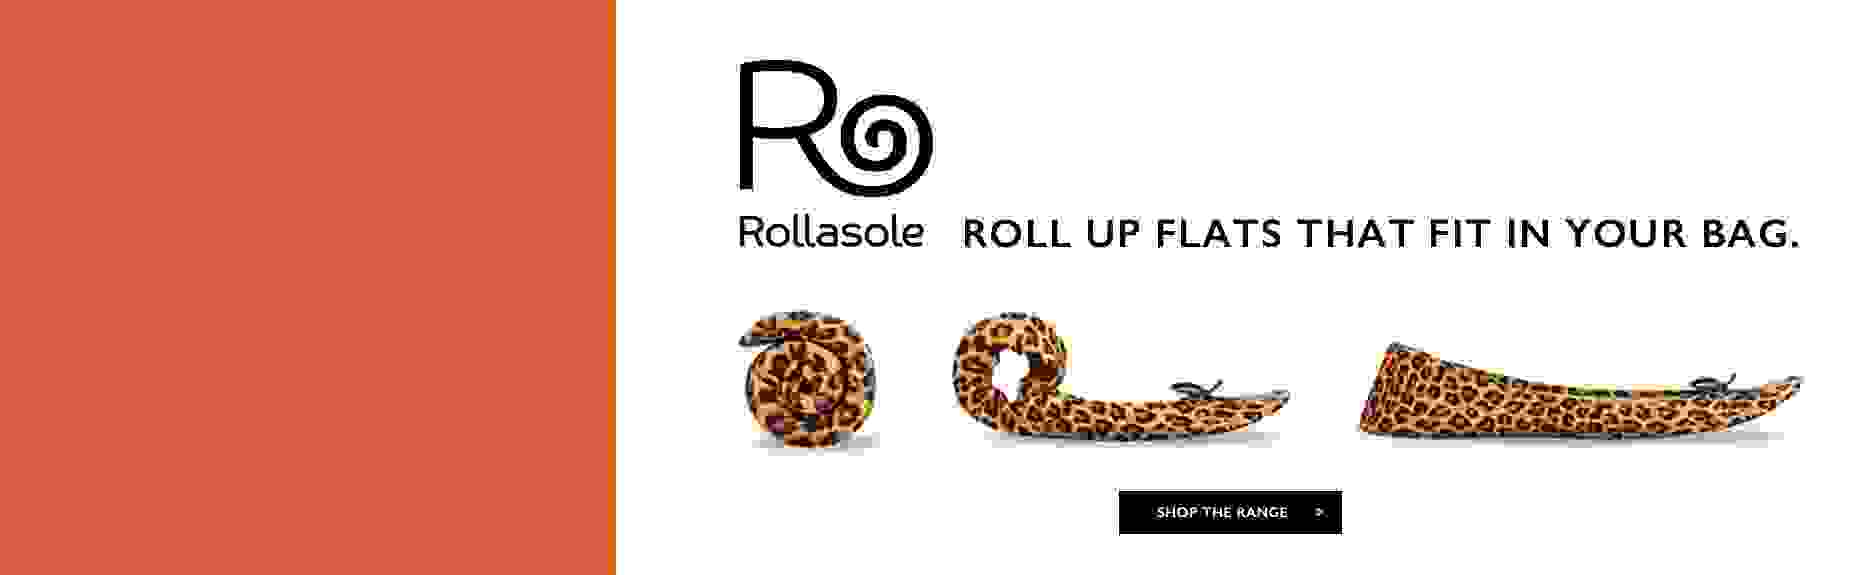 Rollasole Roll Up Flats >